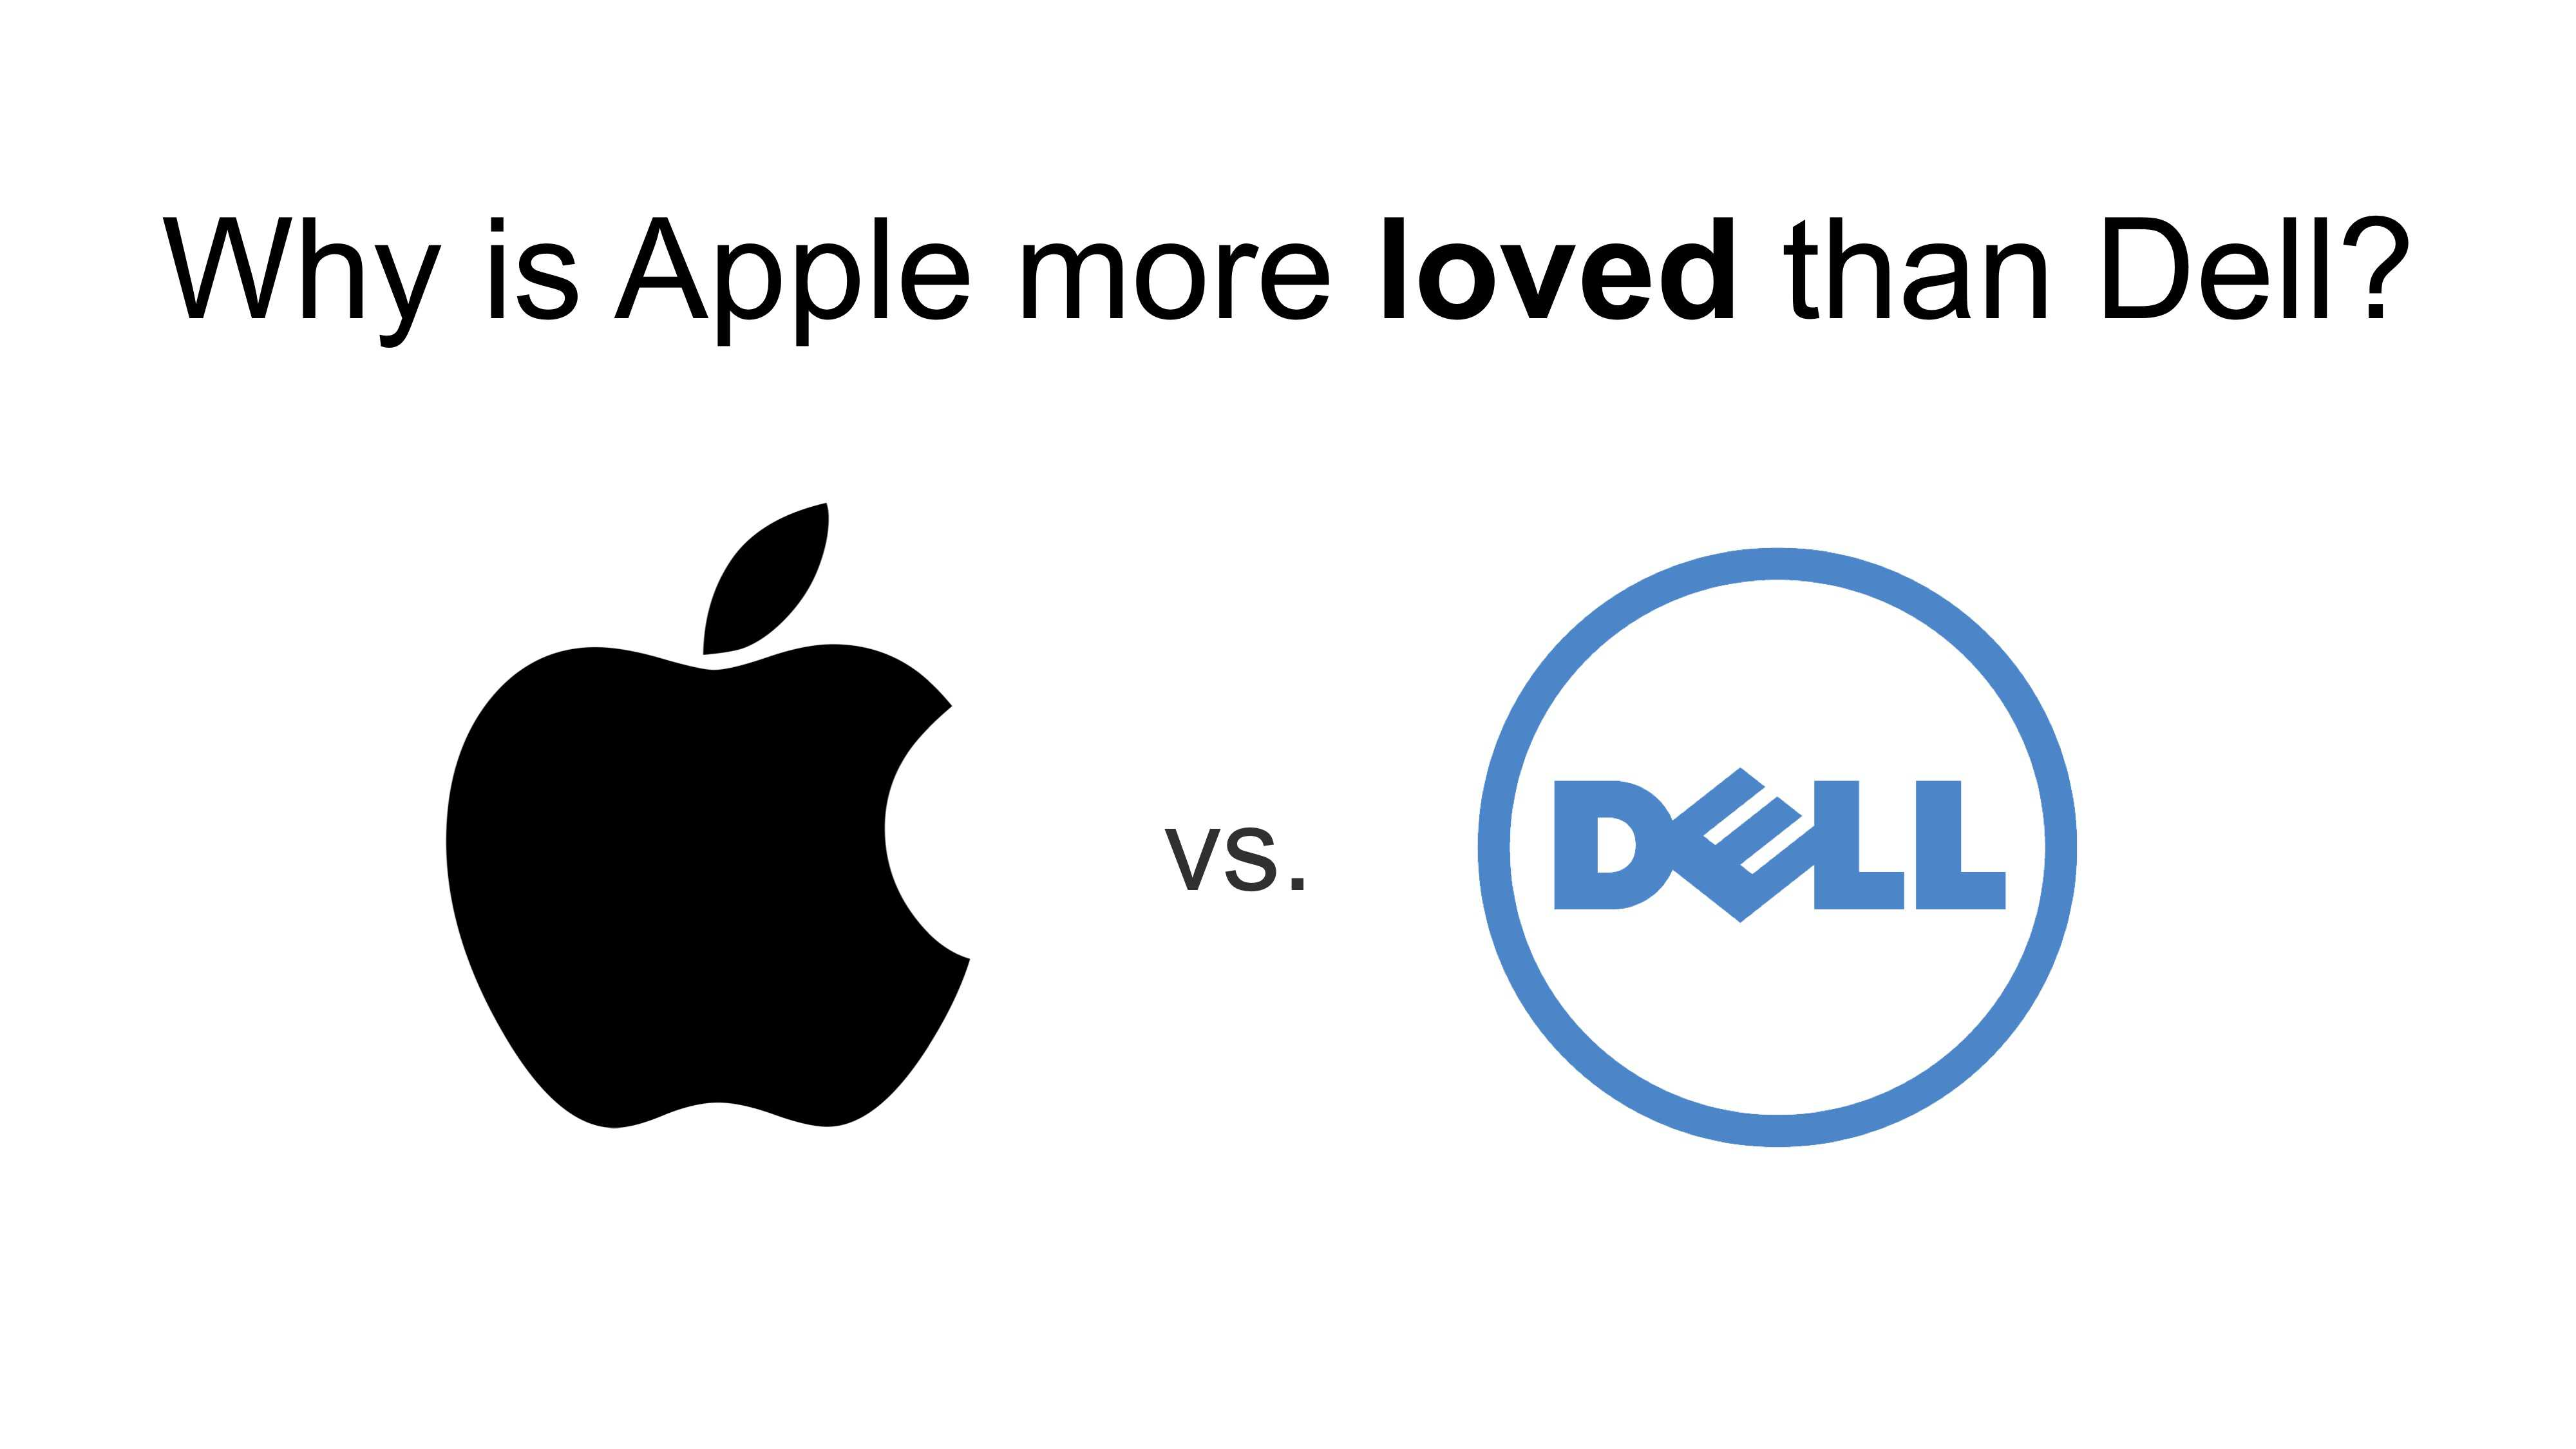 Why is Apple more loved than Dell